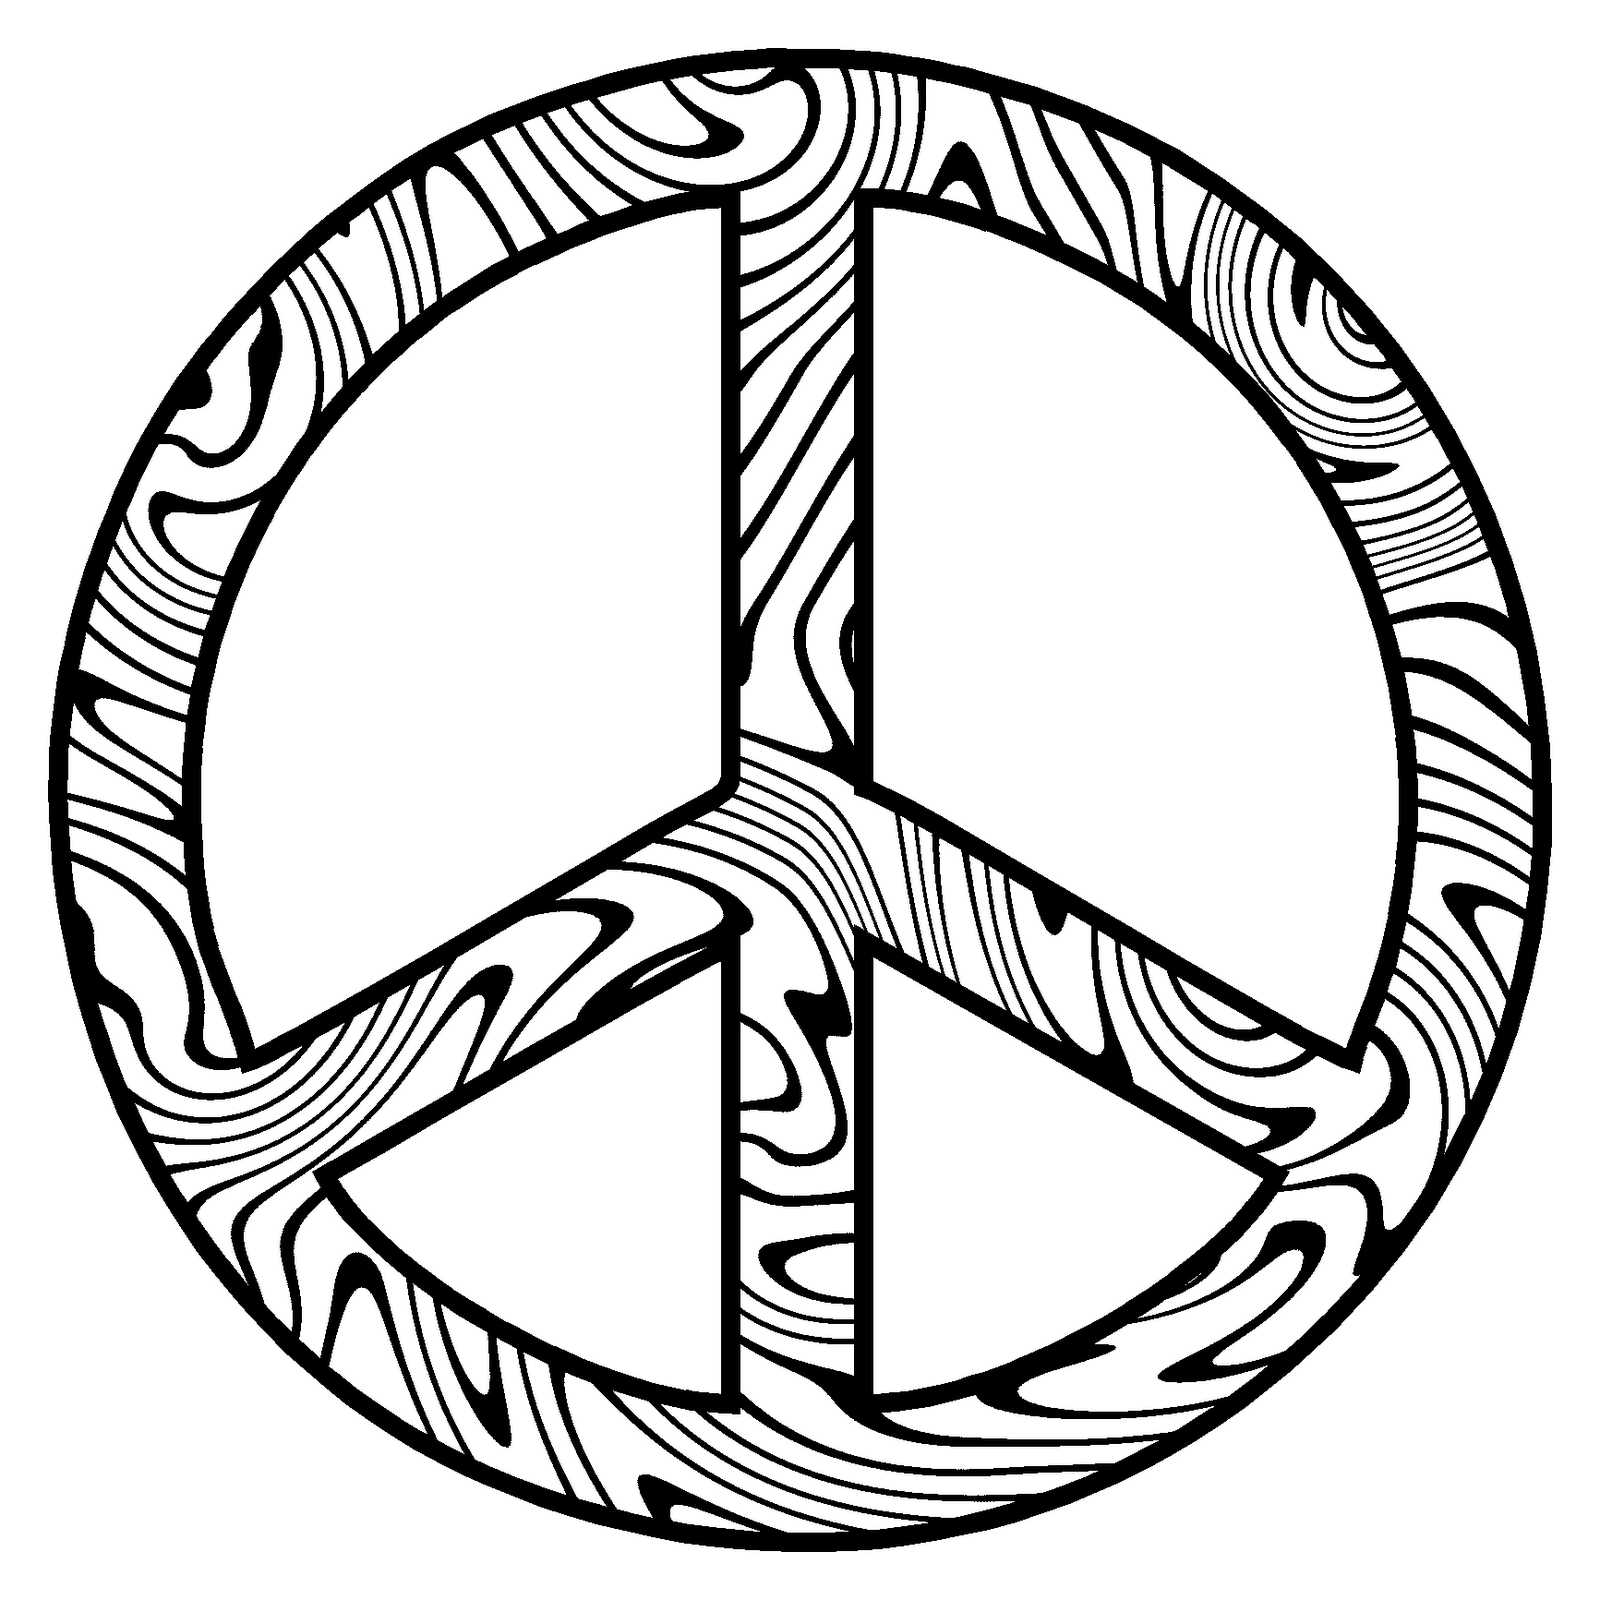 symbol coloring pages - photo#2